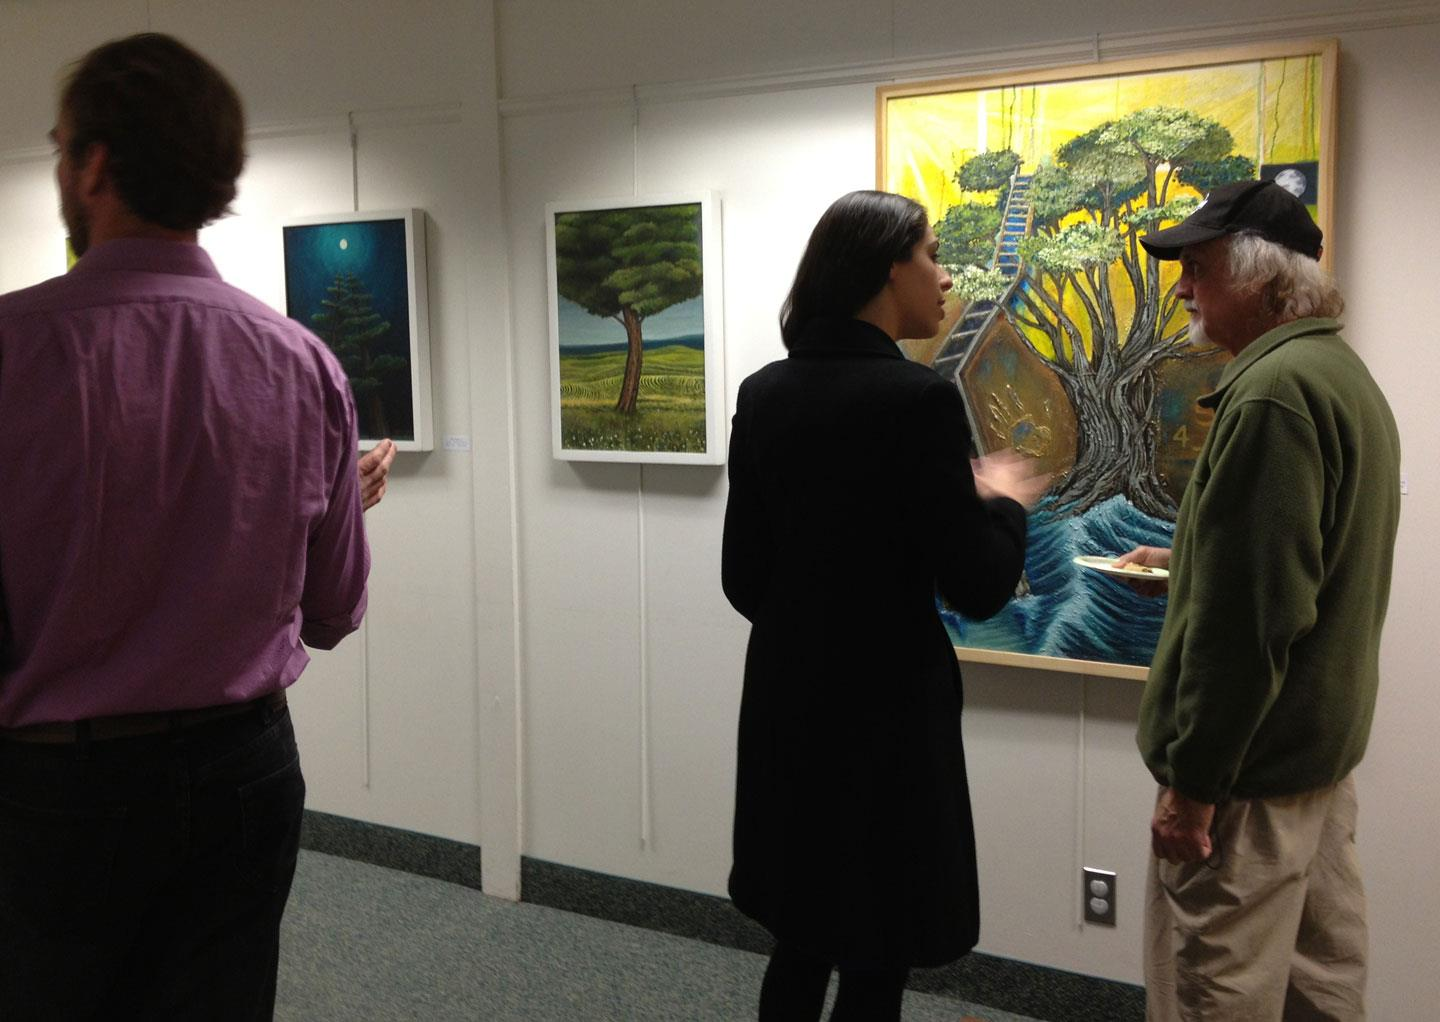 2012 - Opening for Tree: Totems of Life at the Maxwell Memorial Library in Camillus, NY.